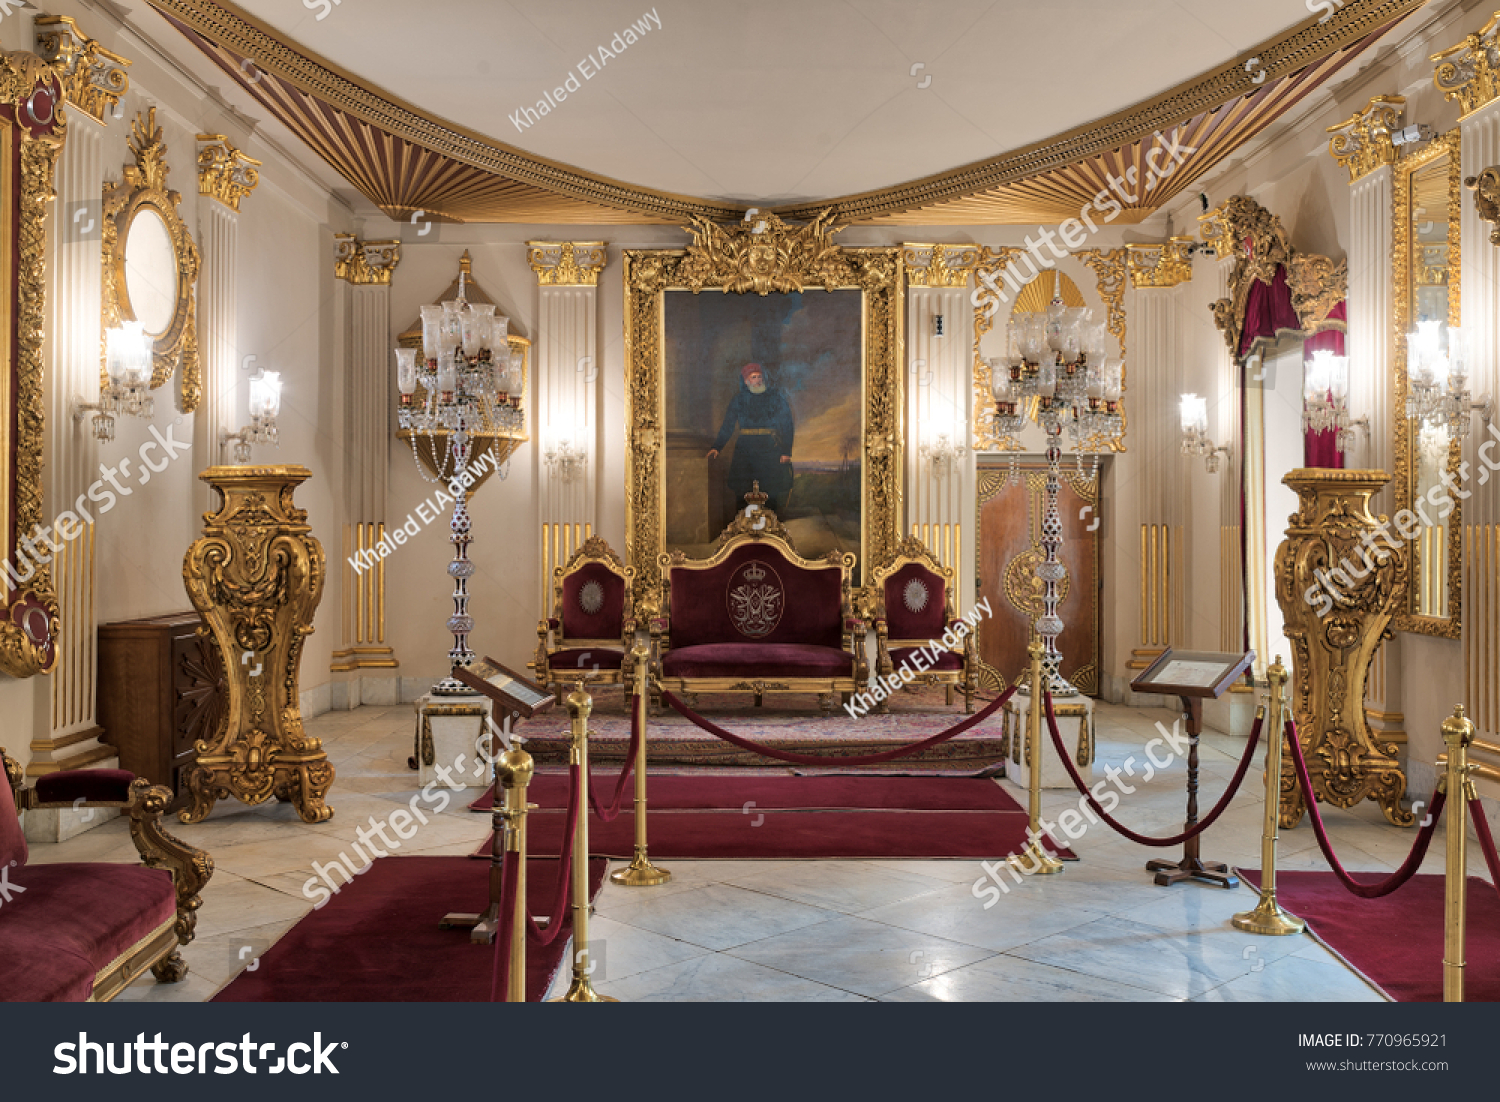 Cairo Egypt - December 2 2017 Throne Hall at Manial Palace of Prince & Cairo Egypt December 2 2017 Throne Stock Photo 770965921 ...